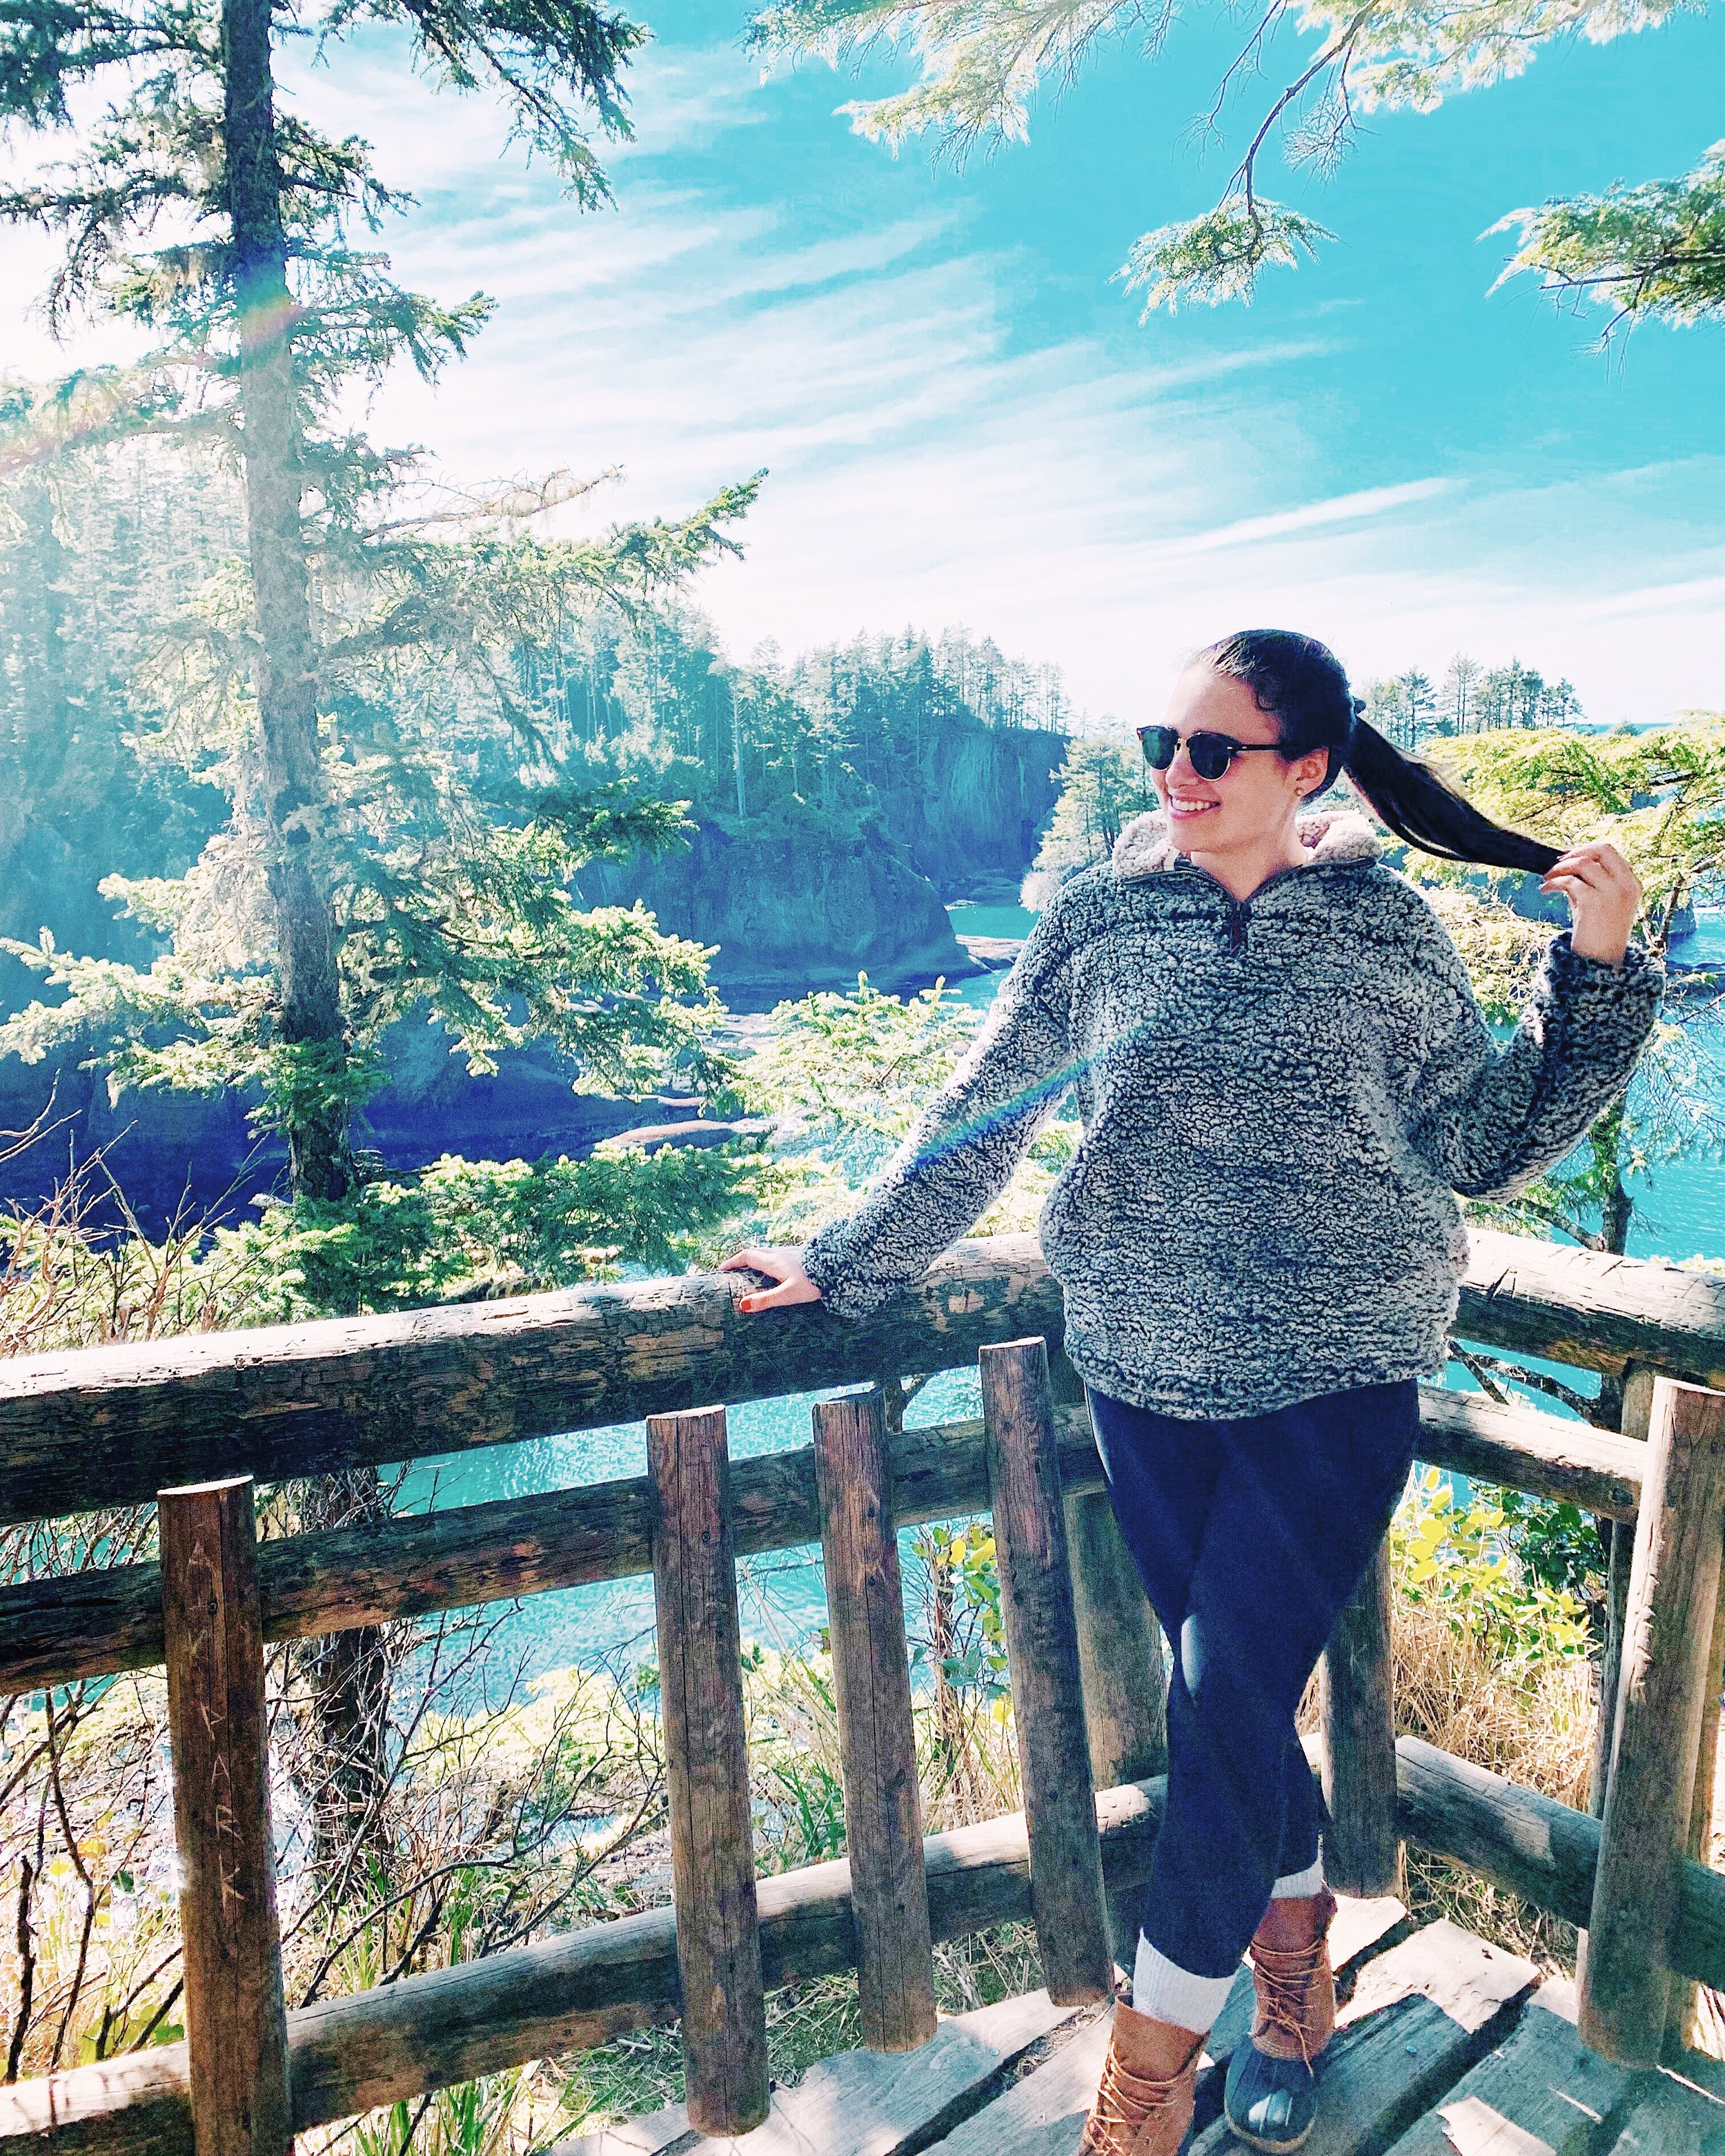 Cape Flattery, where we saw the bald eagle!